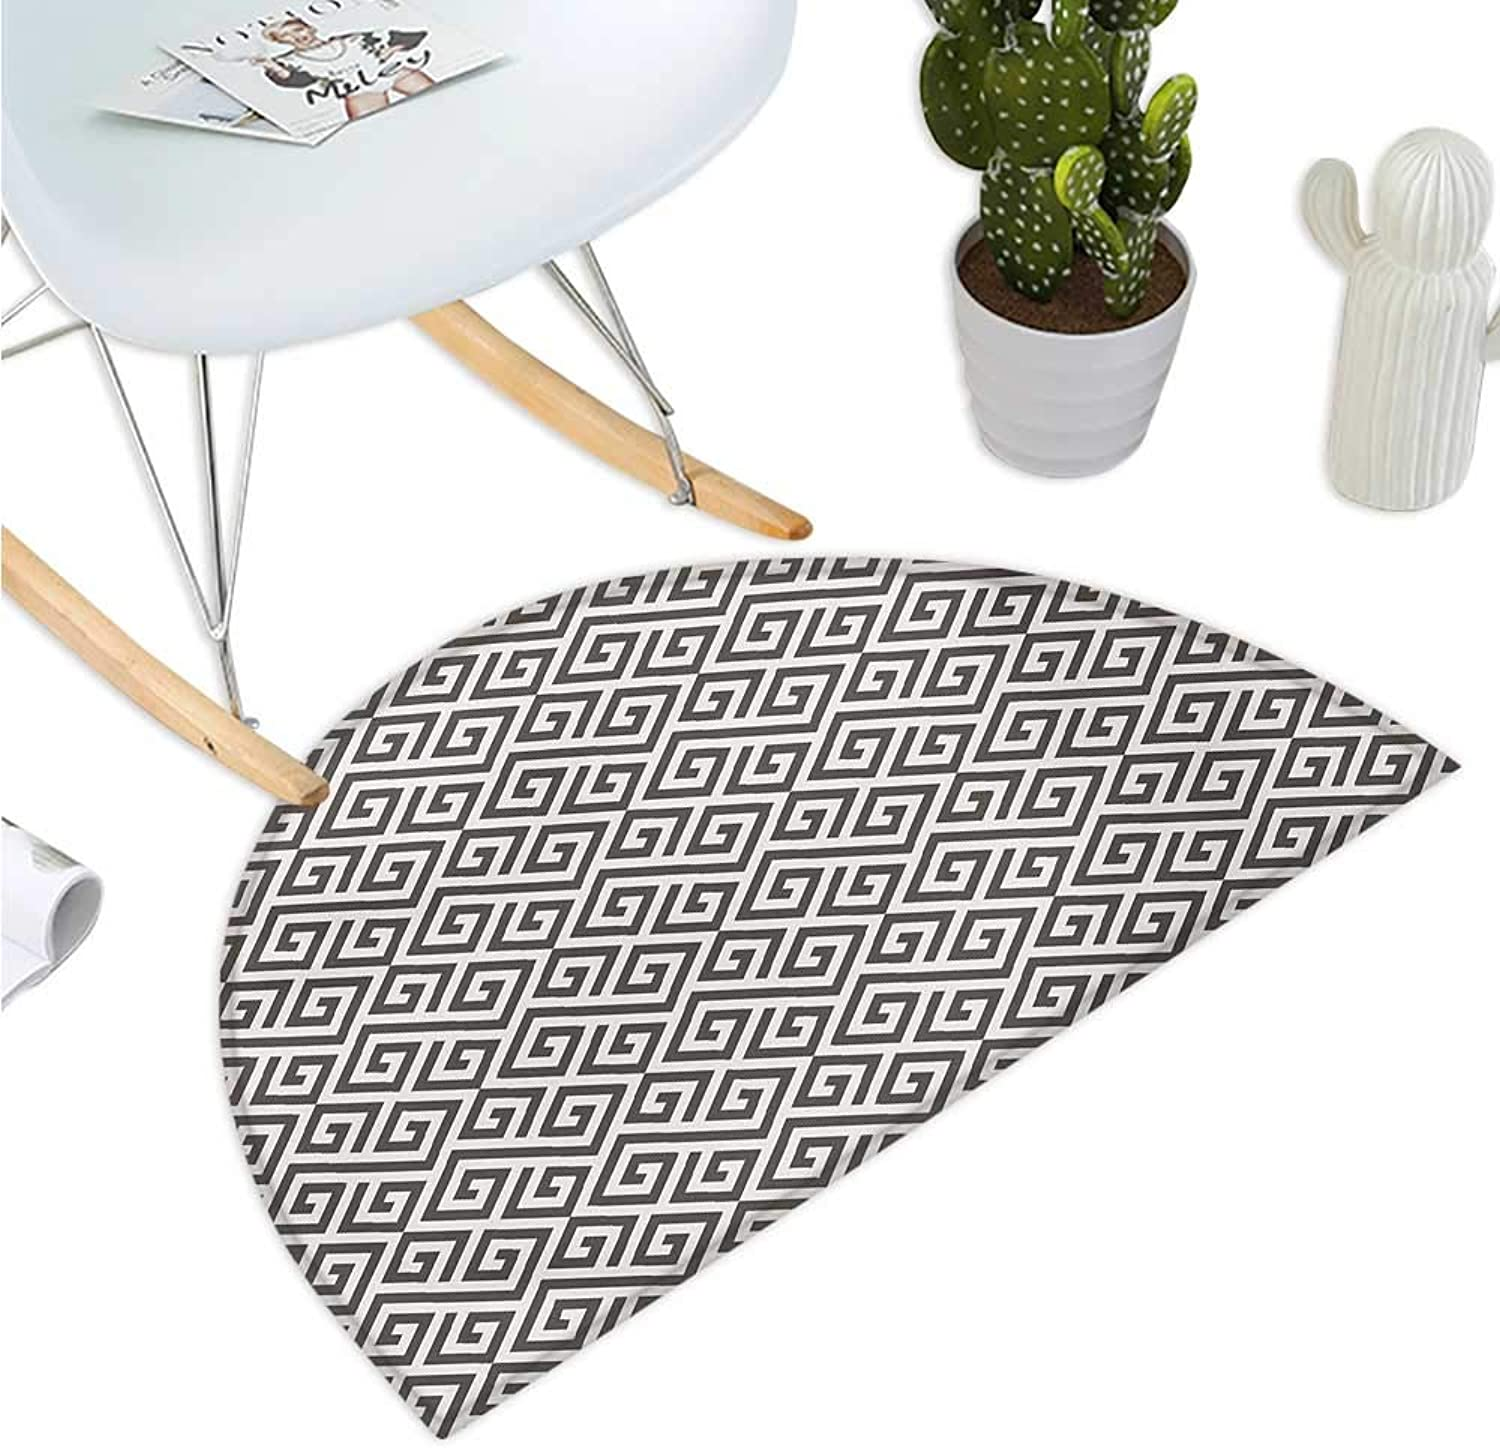 Modern Semicircular Cushion Geometrical Tribal Ethnic Detailed with Maze Like Shapes Artwork Print Entry Door Mat H 43.3  xD 64.9  White and Army Green